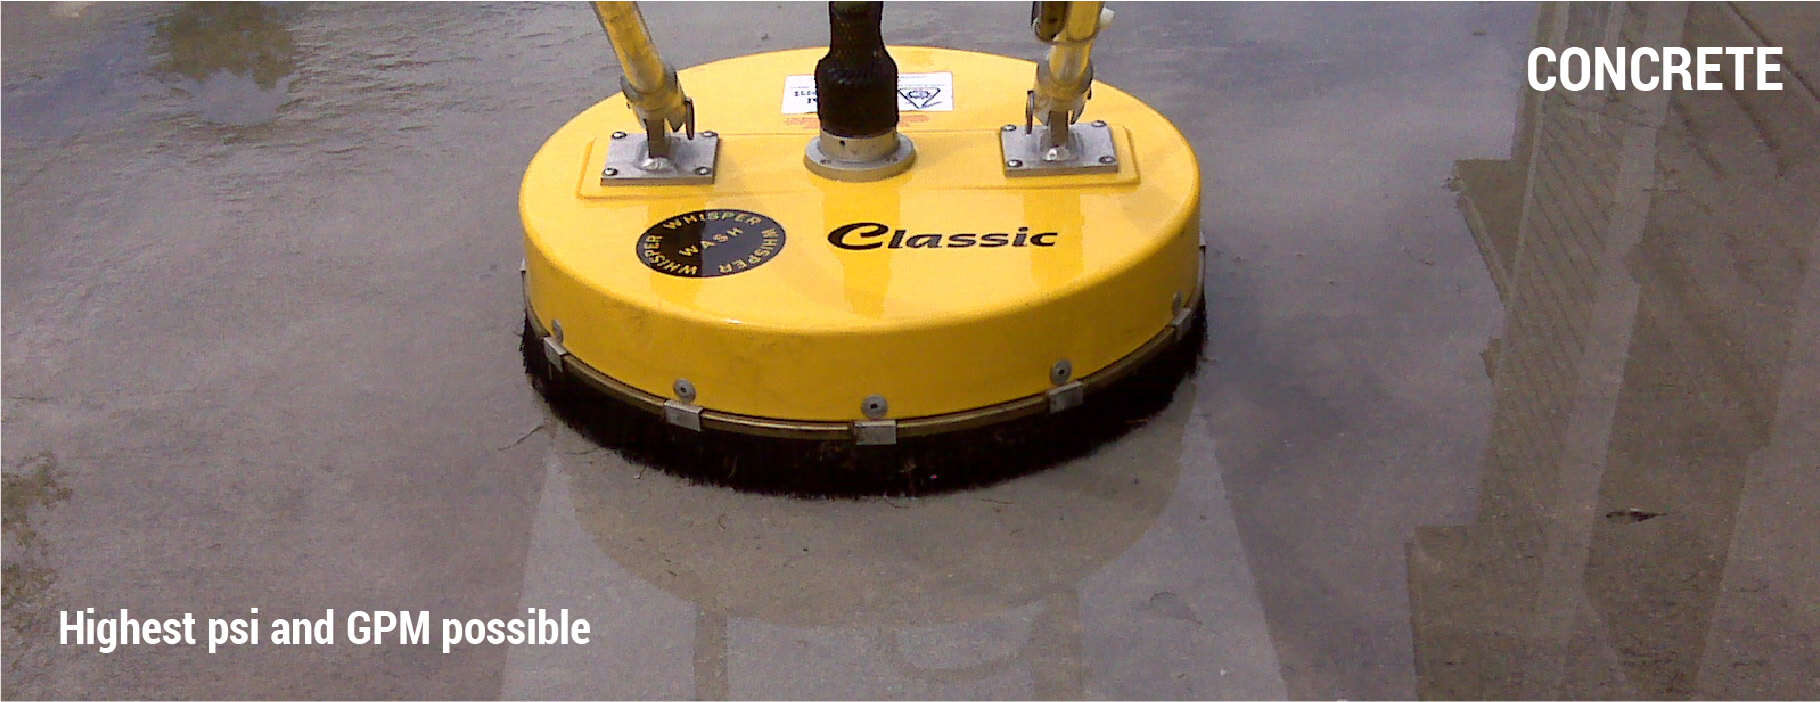 What PSI Pressure Washer To Clean Concrete?